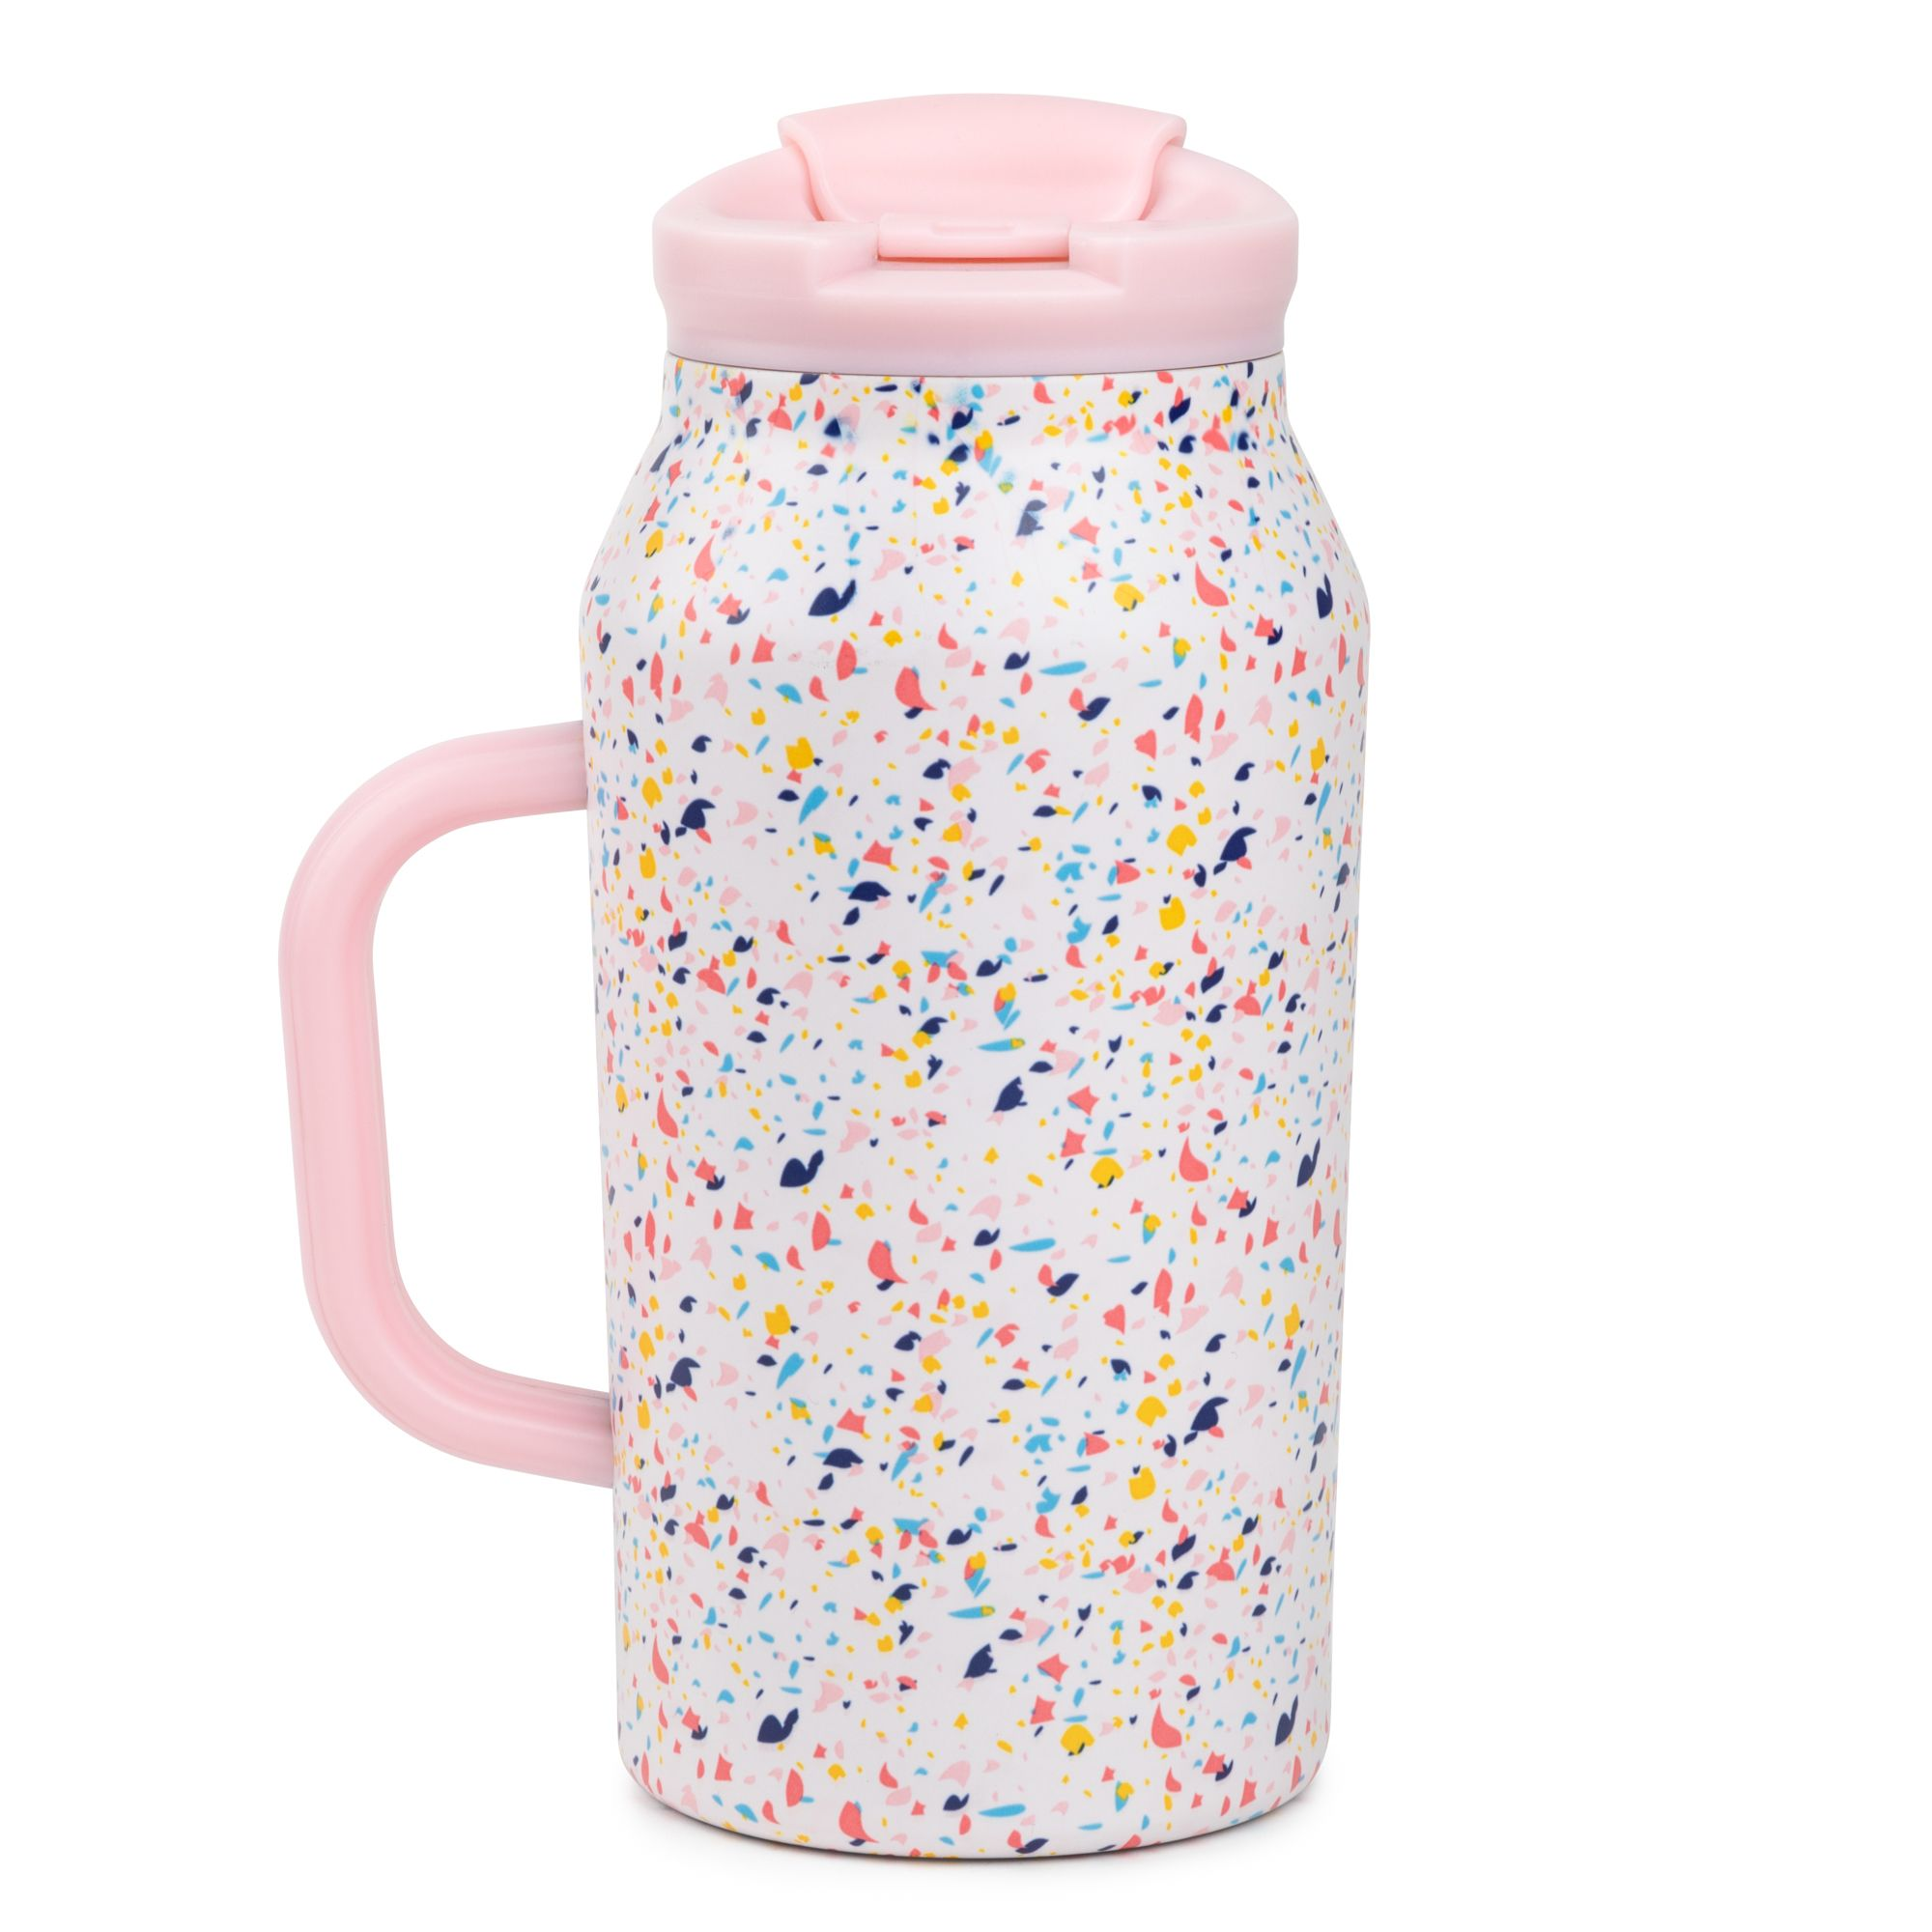 Tal 40 Ounce Confetti Stainless Steel Basin Water Bottle Walmart Com In 2020 Water Bottle Bottle Basin It is recommended that the tal water bottle be not washed in the dishwasher. tal 40 ounce confetti stainless steel